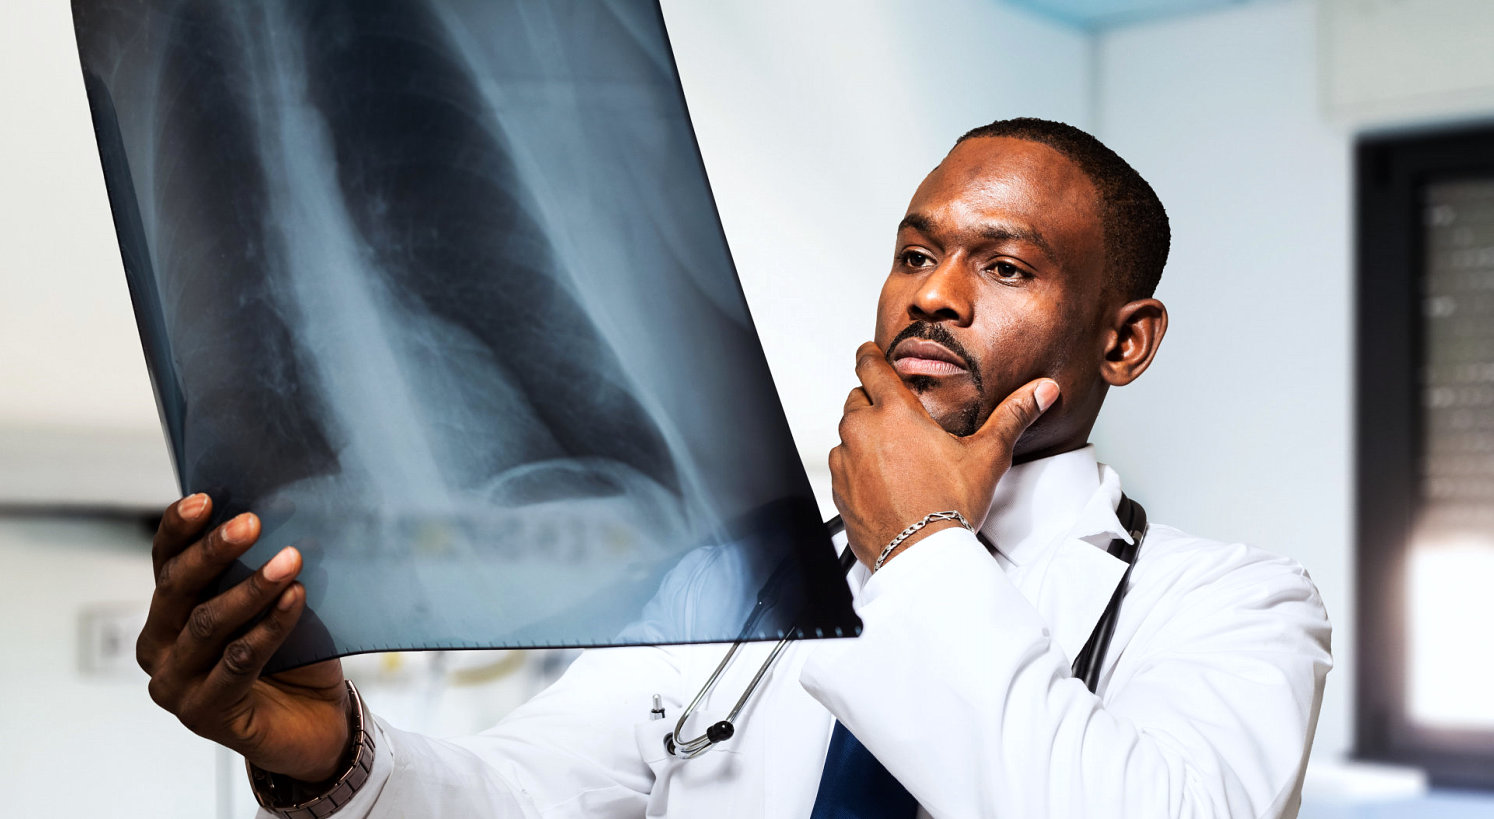 doctor analyzing the x-ray result